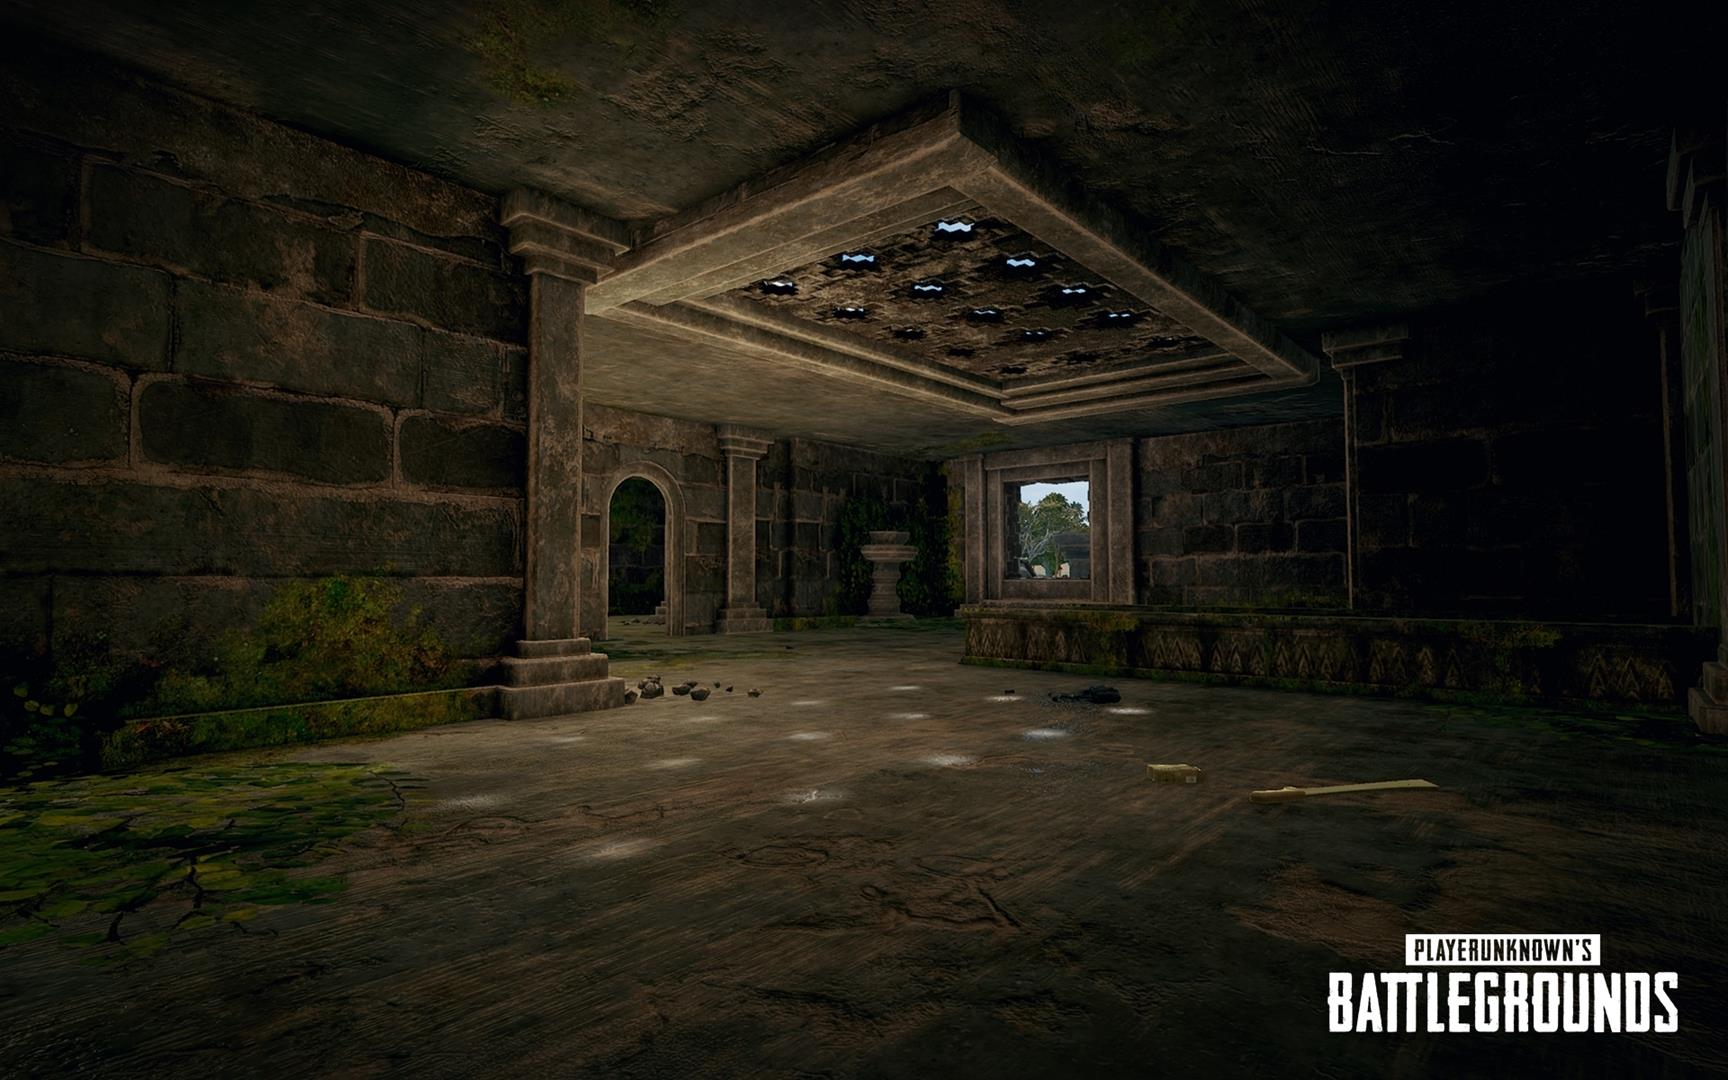 Following A Bit Of A Delay Playerunknowns Battlegrounds Has Now Kicked Off The Final Round Of Testing For The Sanhok Map